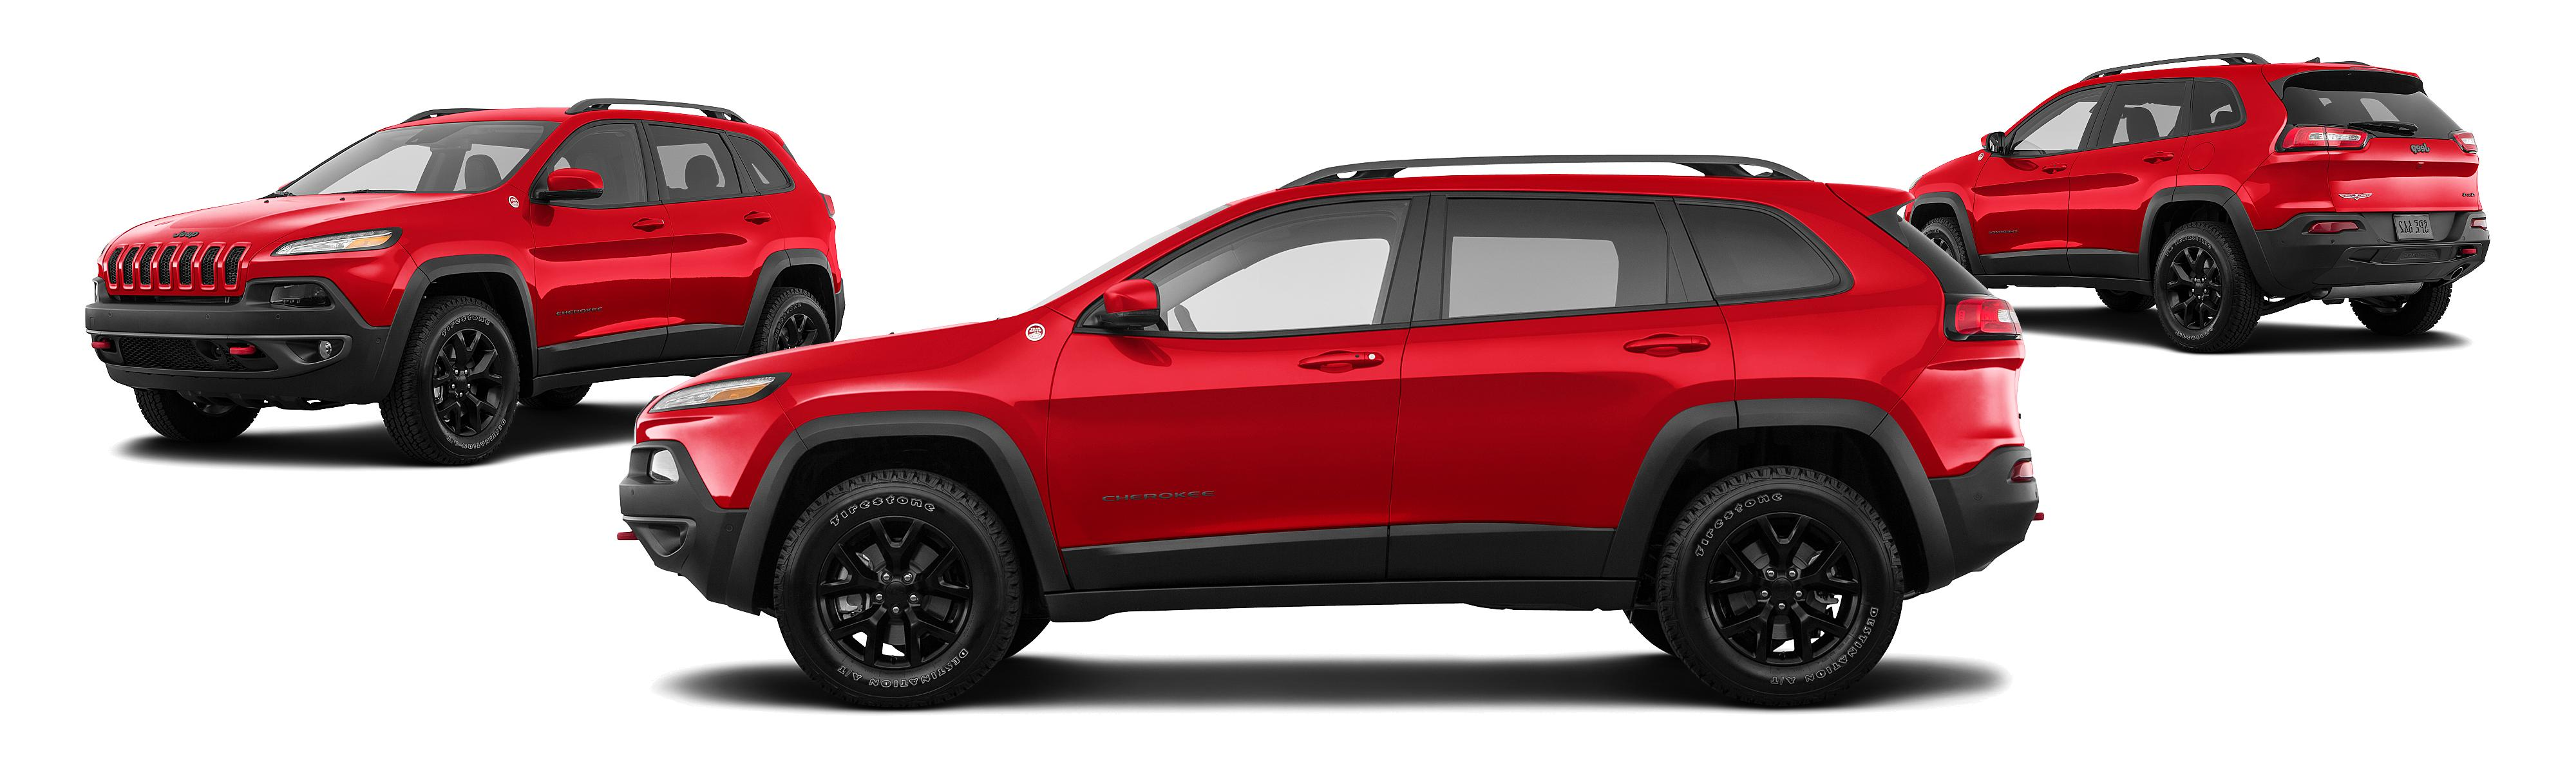 2018 Jeep Cherokee 4x4 Trailhawk L Plus 4dr SUV Research GrooveCar